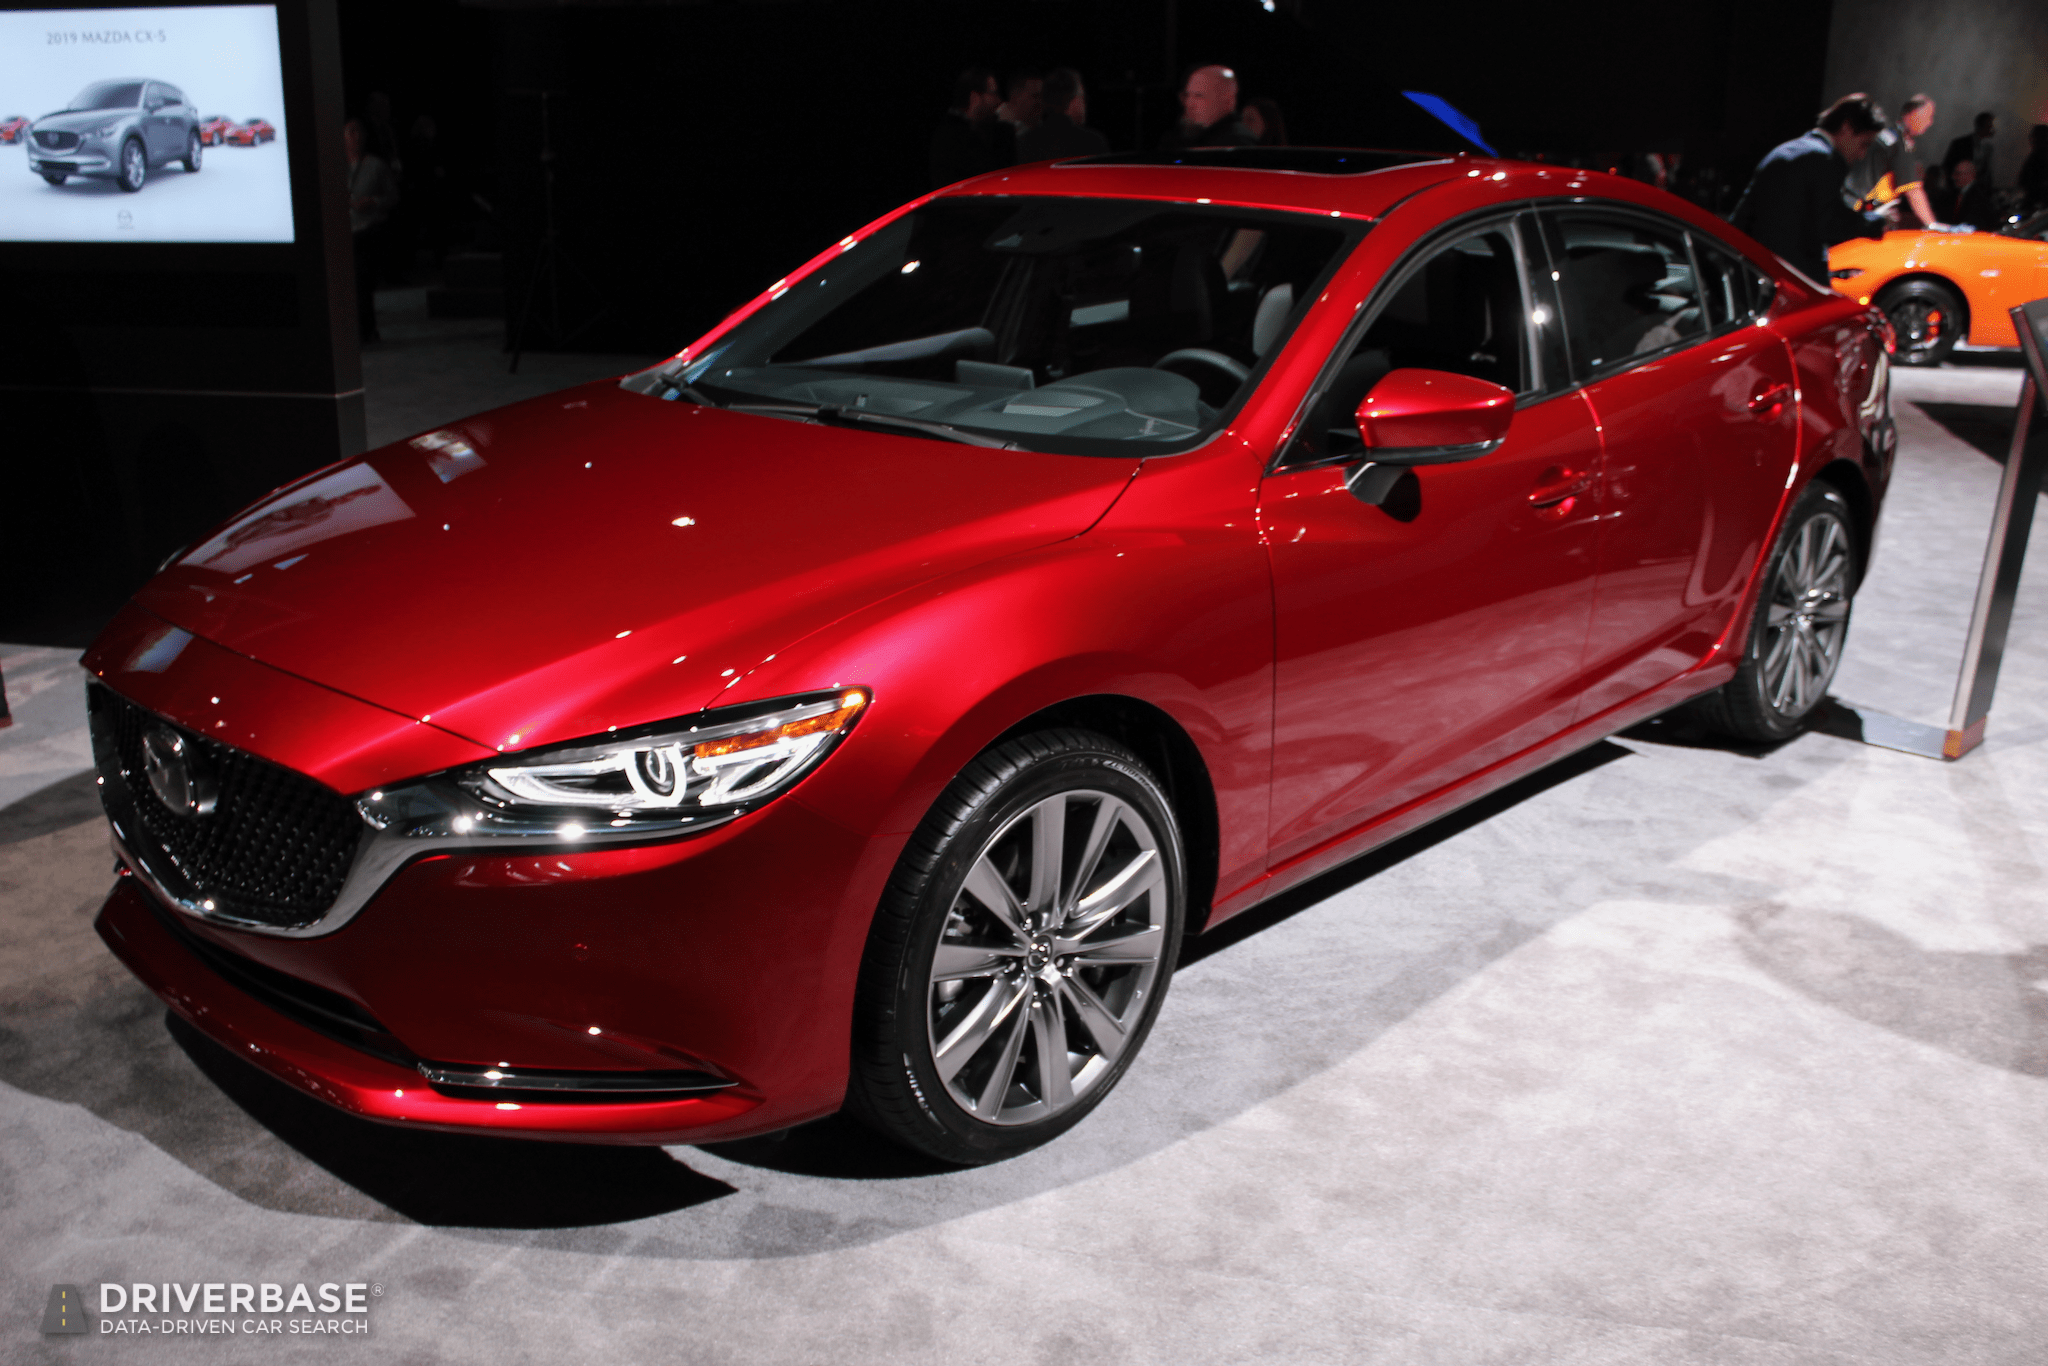 60 Great All New Mazda 6 2020 Performance and New Engine with All New Mazda 6 2020